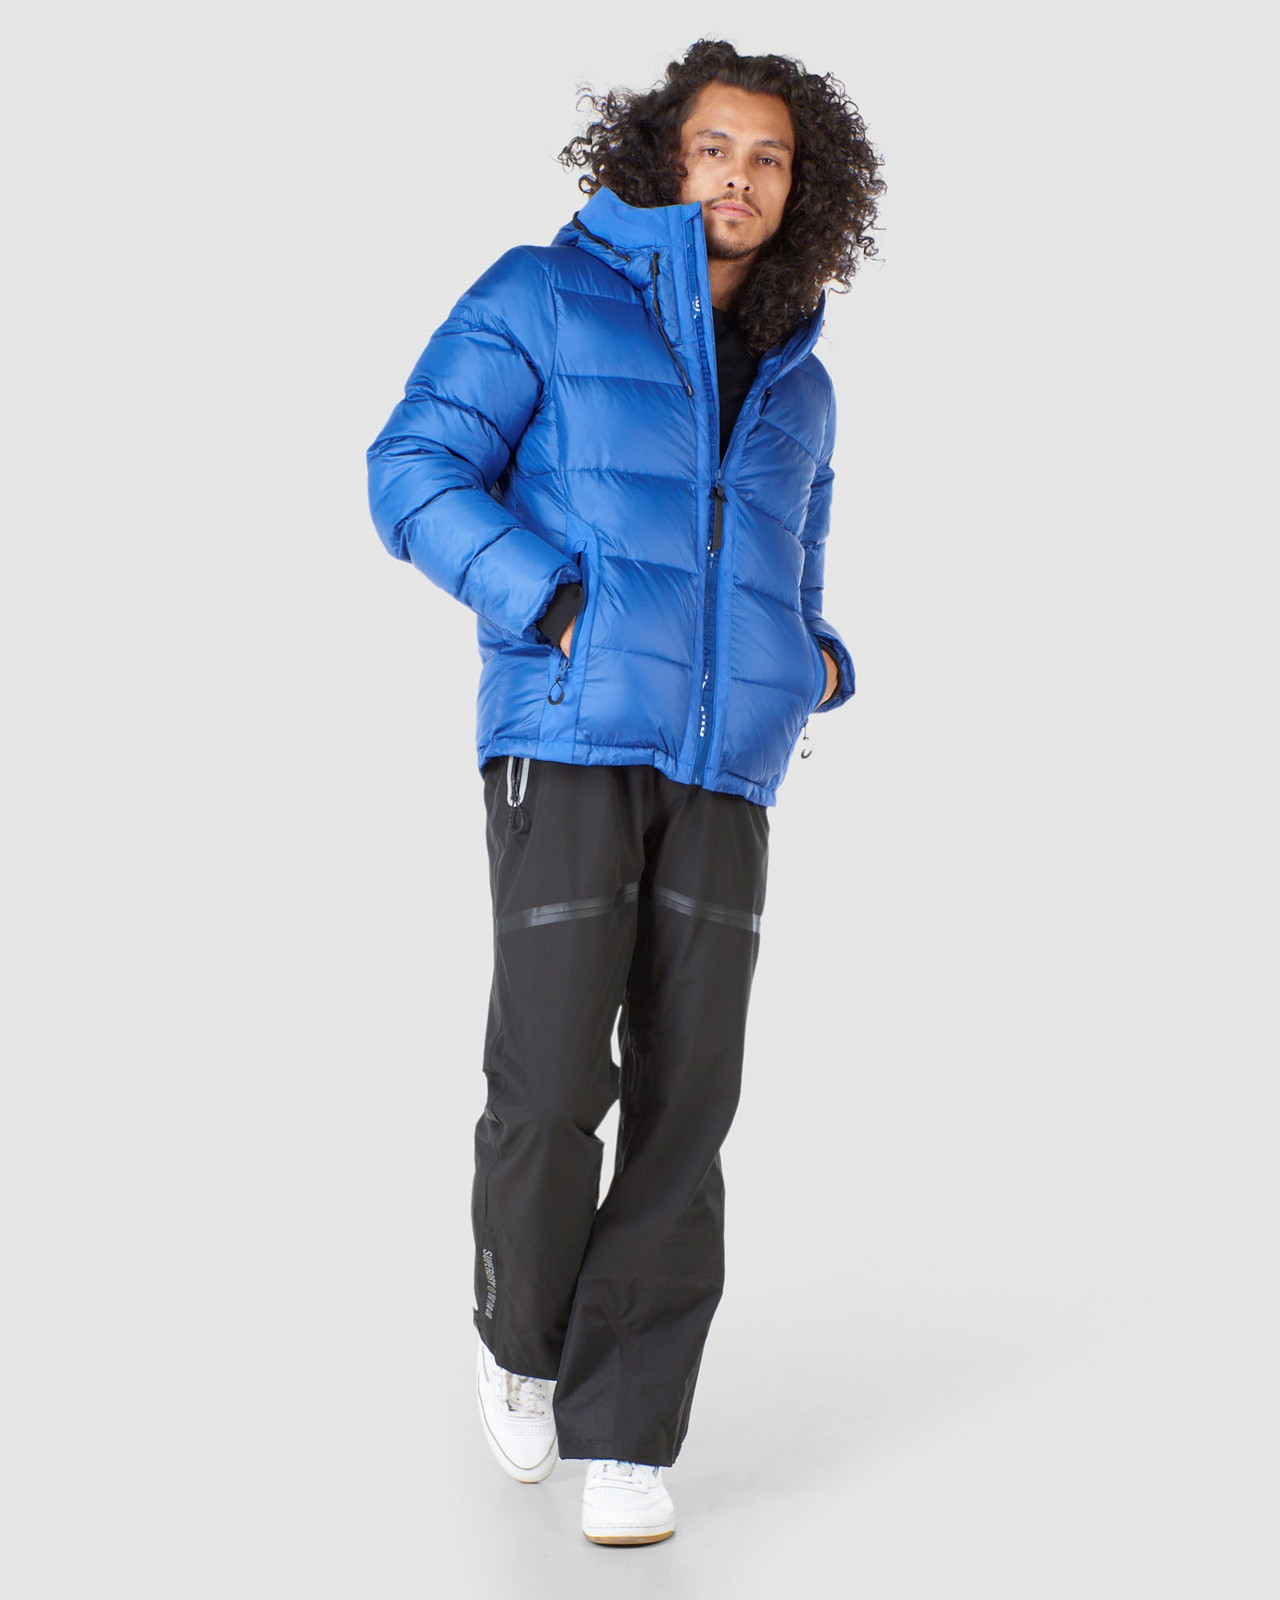 Superdry Mens MOUNTAIN PRO RACER PUFFER Blue Green Snow Jackets 1